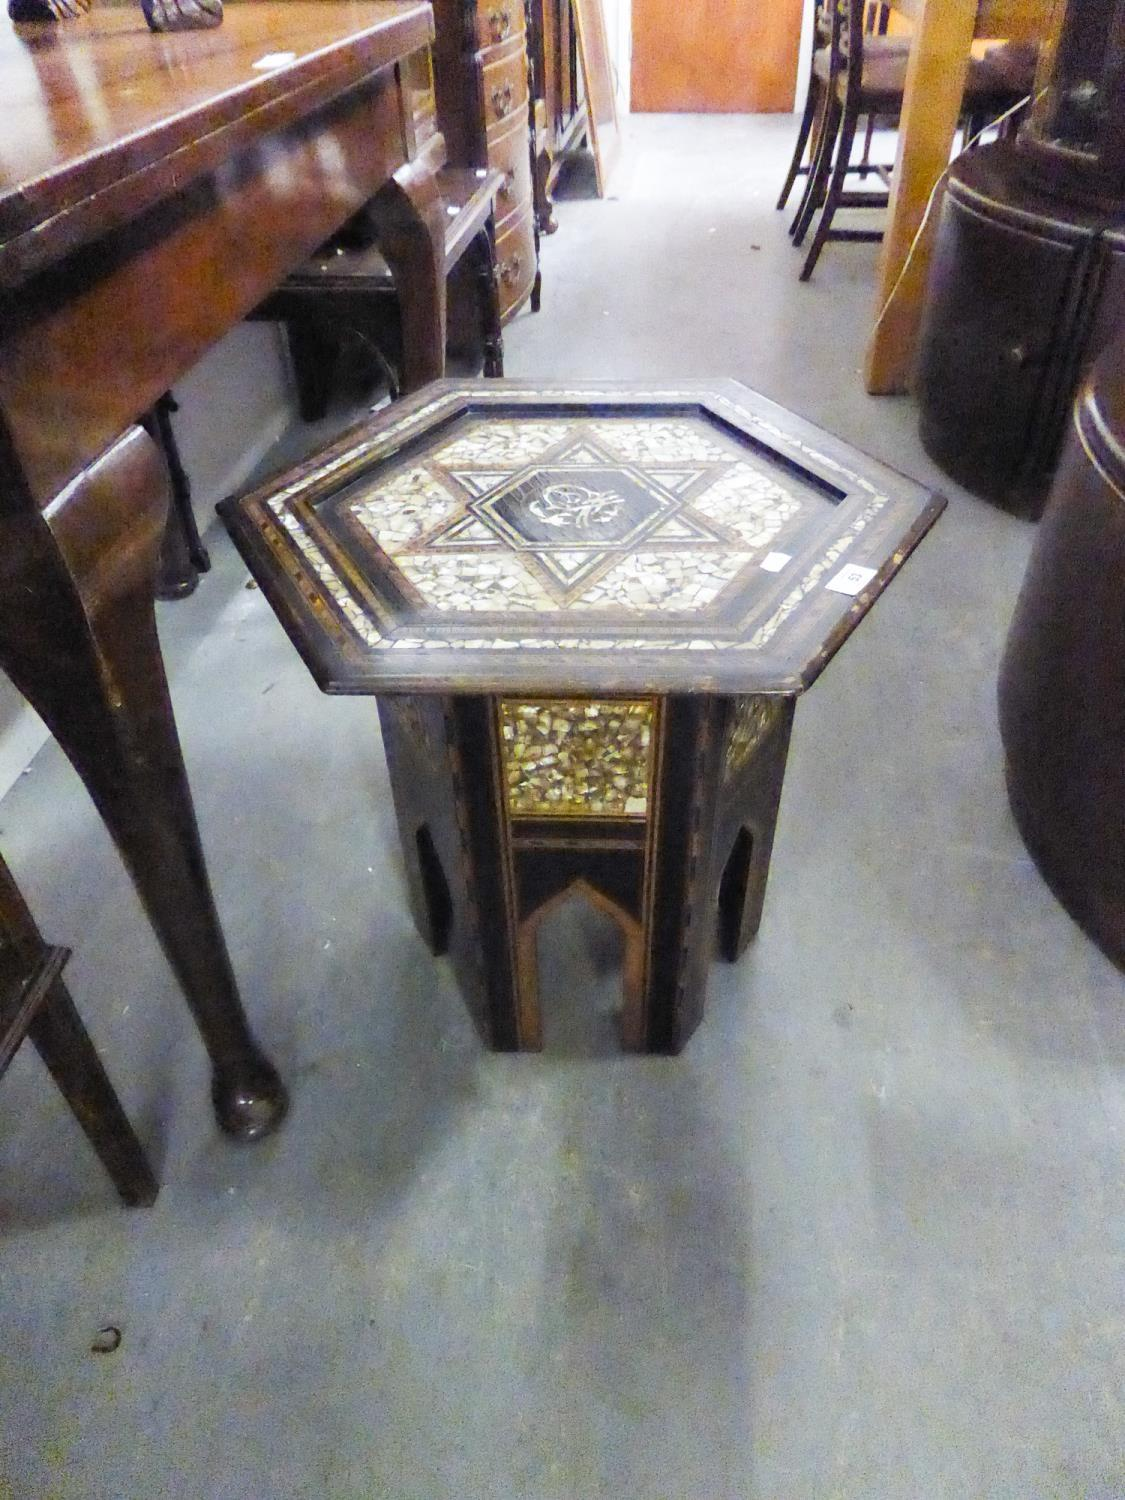 EARLY TWENTIETH CENTURY INDIAN TABLE, HAVING HEXAGONAL TOP ON SHAPED BASE, WITH MOTHER O'PEARL AND